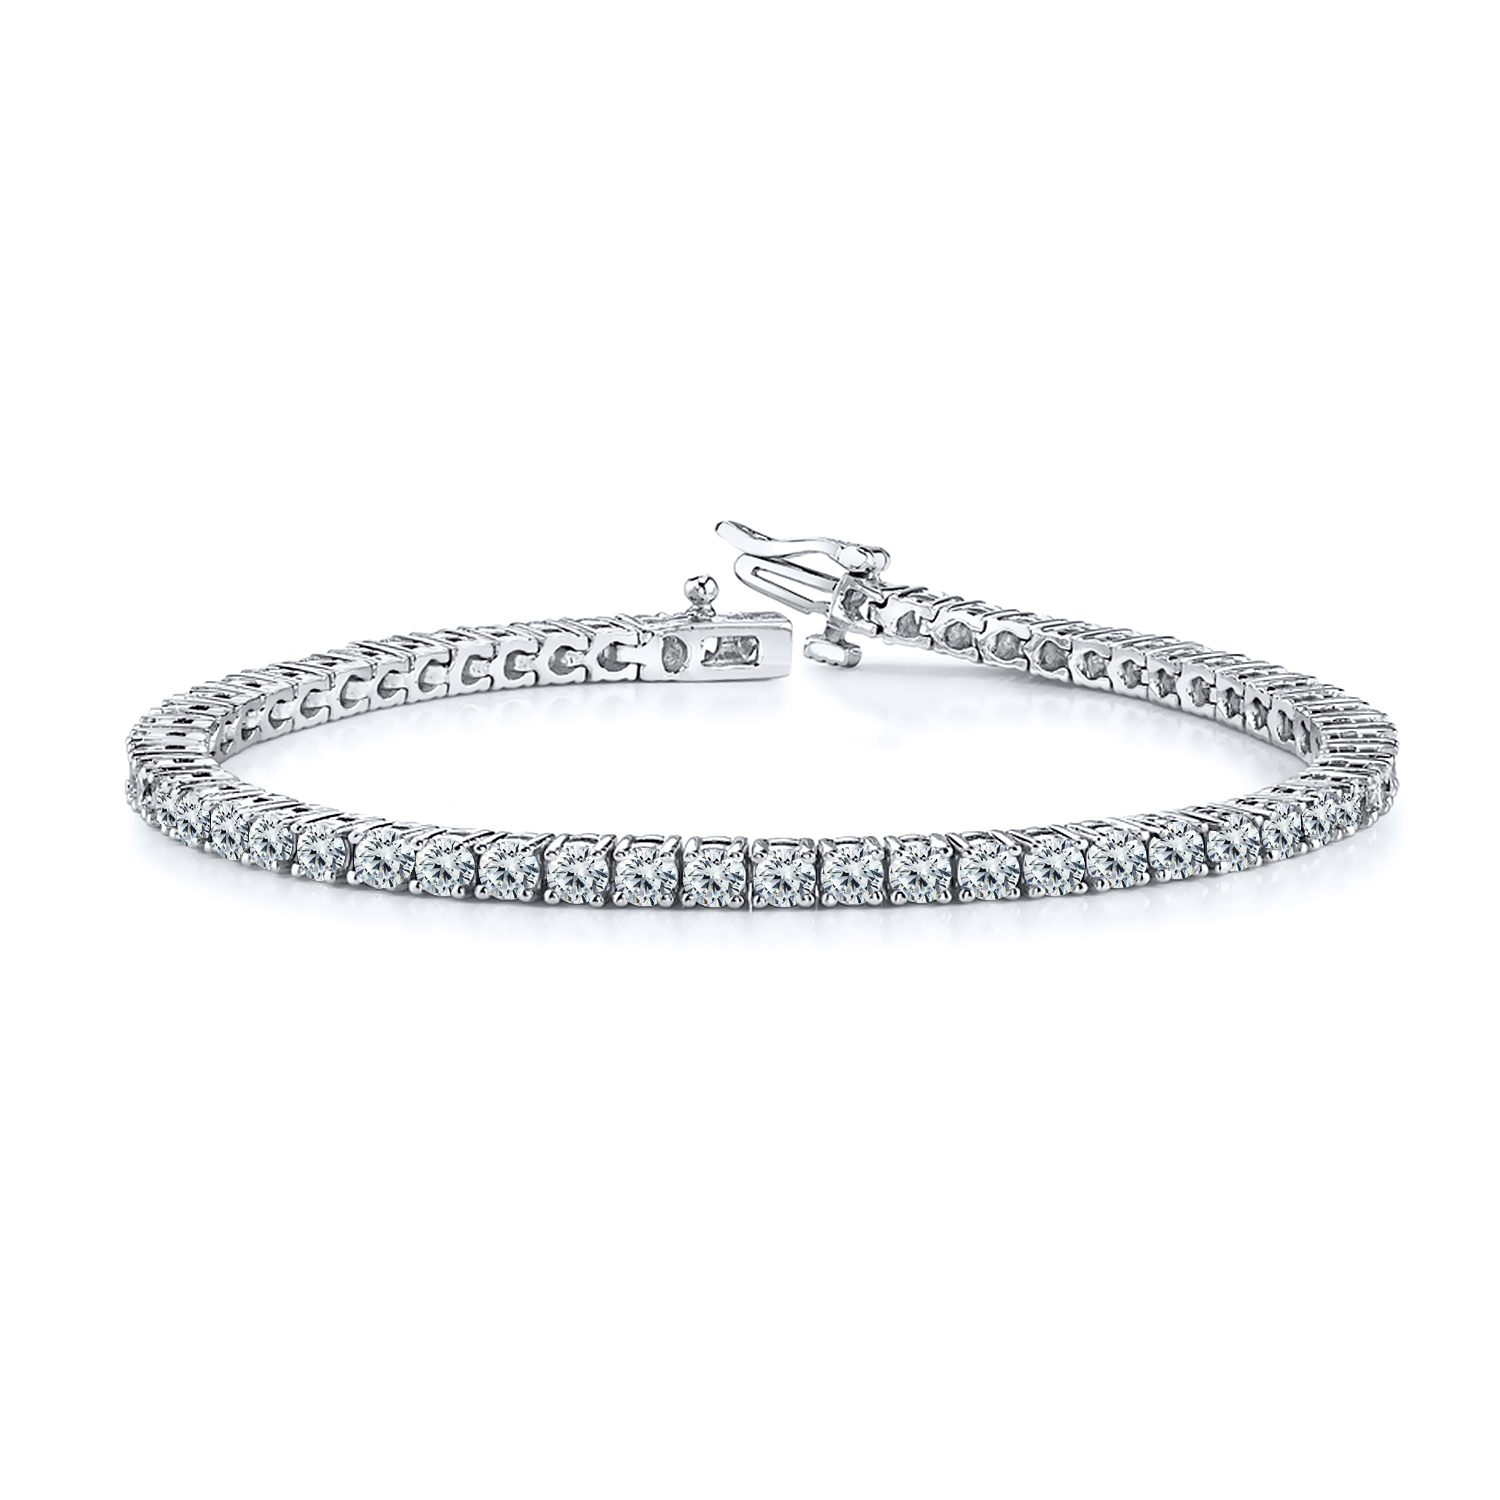 Certified 14k White Gold 4-Prong Round Diamond Tennis Bracelet 2.00 ct. tw. (I-J, I1)